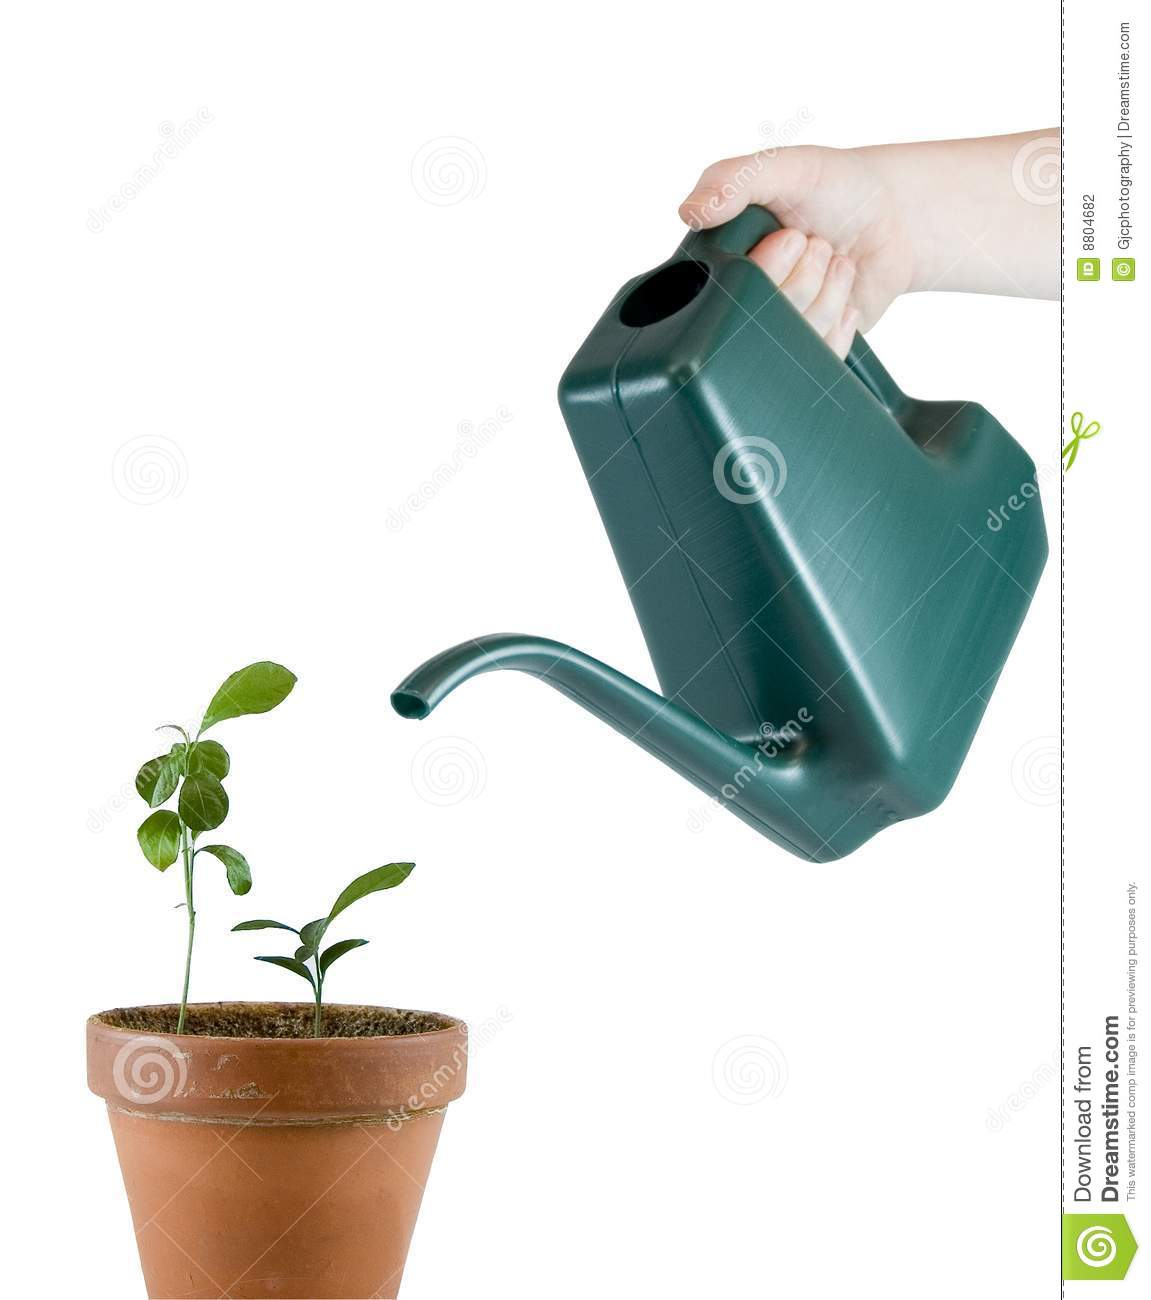 Grote Gieter Watering Can Pouring On Plants Stock Photography Image